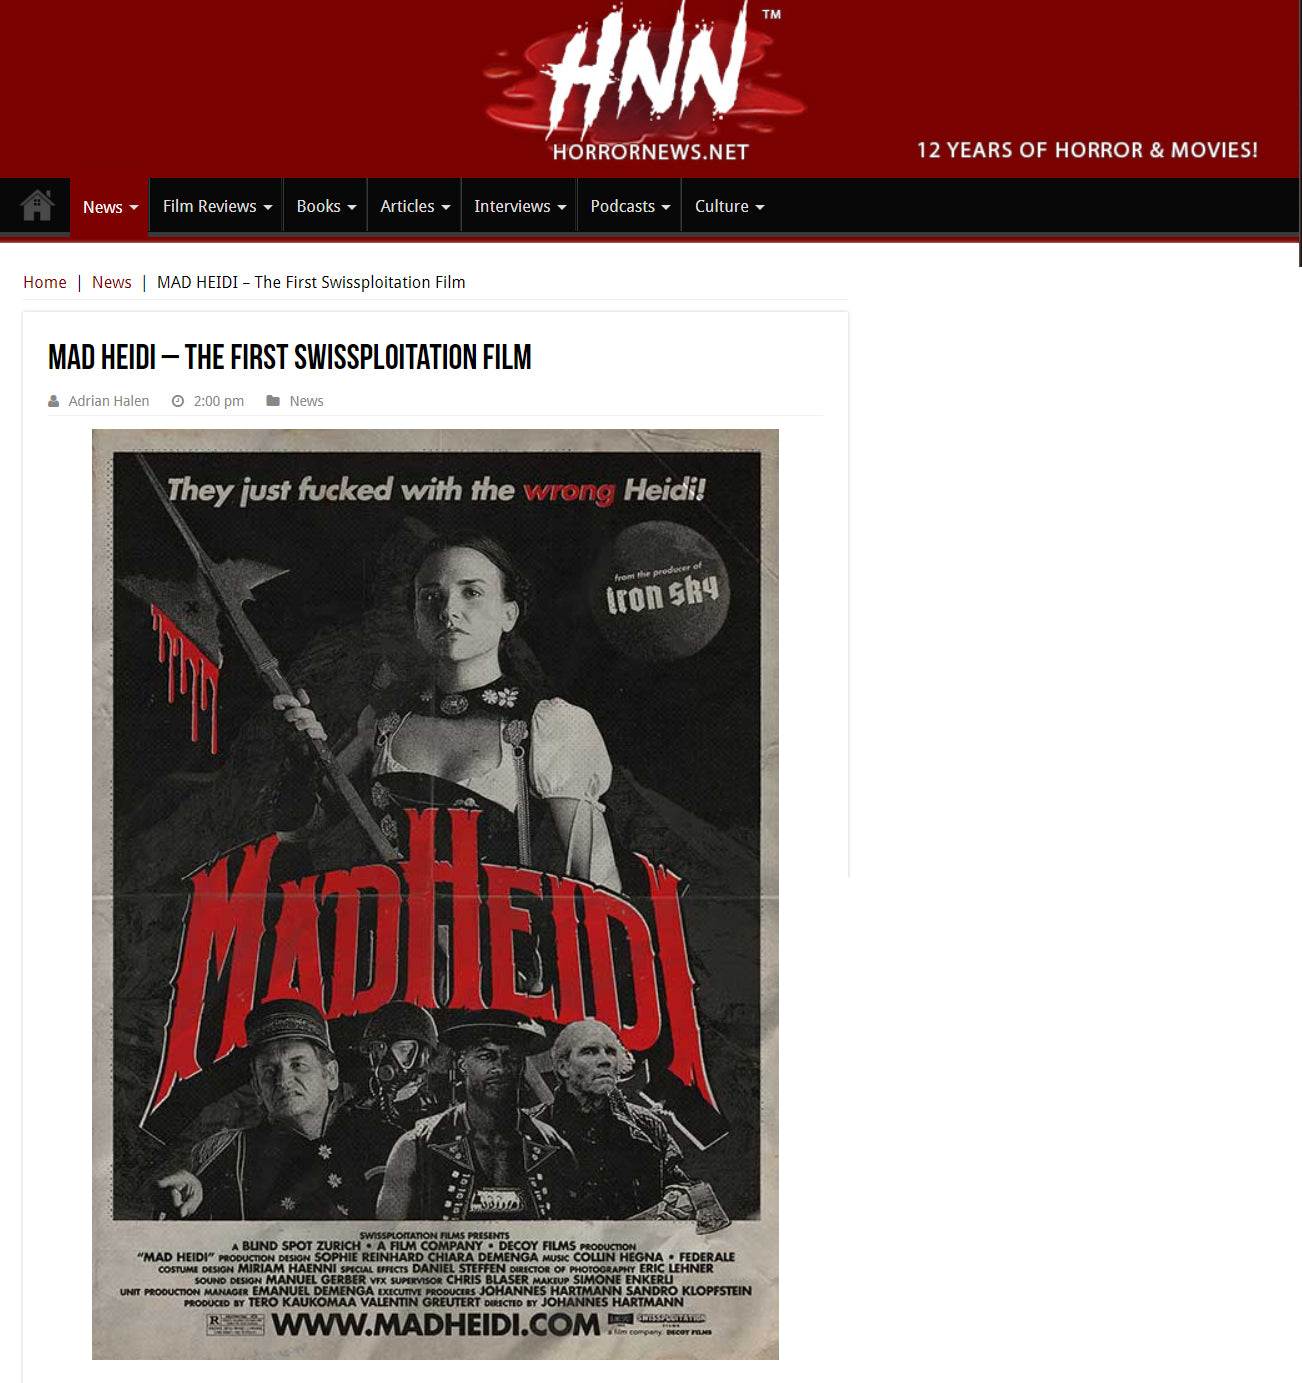 HORROR NEWS: MAD HEIDI – The First Swissploitation Film